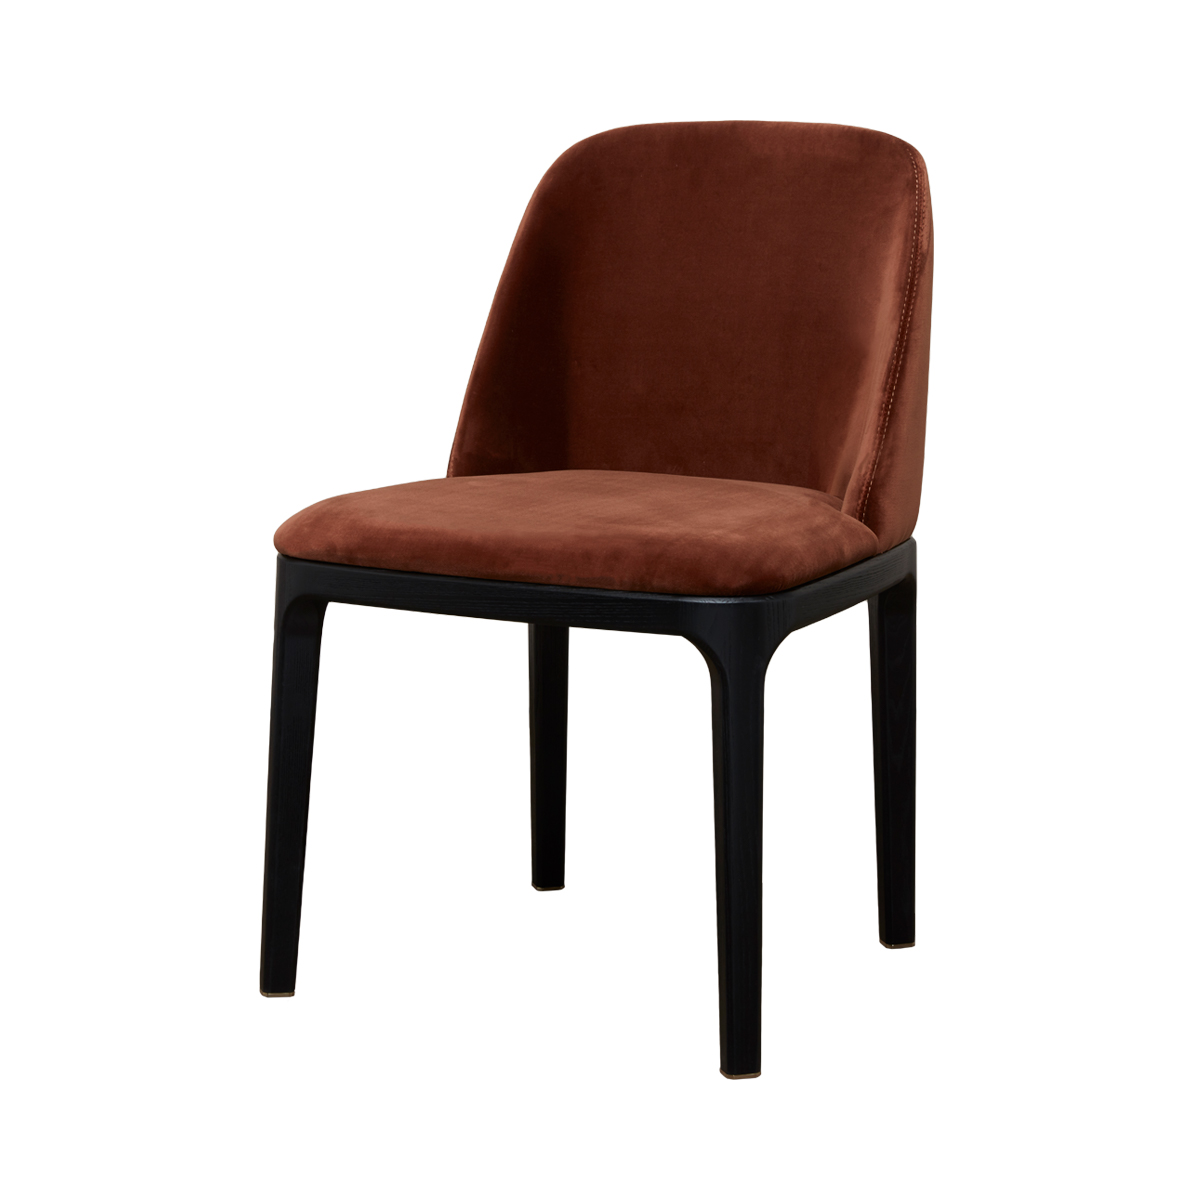 Gemma Dining Chair – Rust